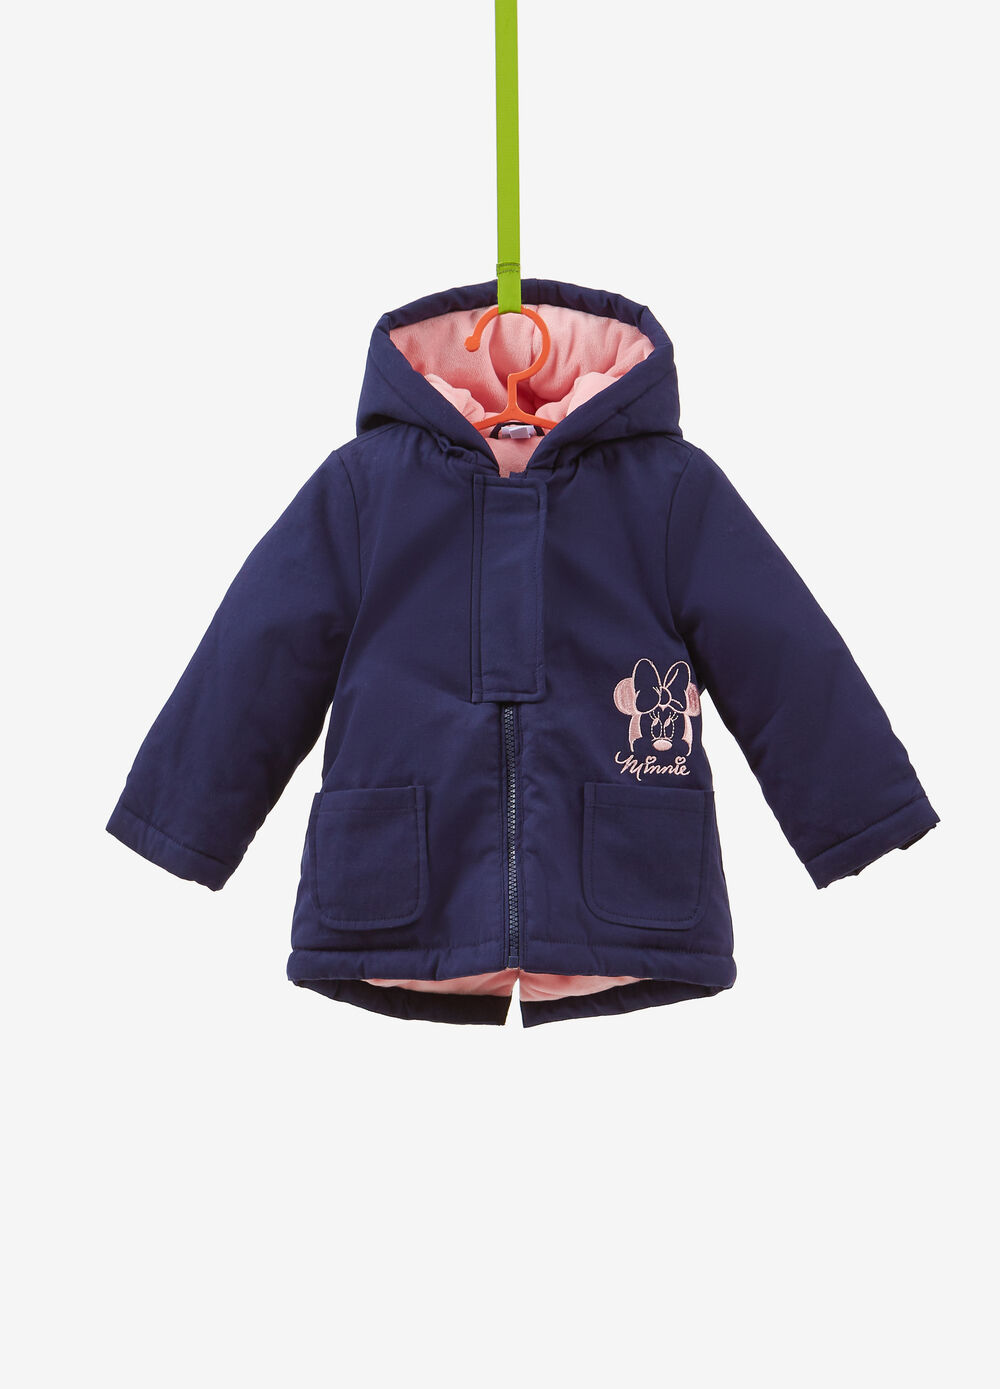 Parka in 100% cotton with Minnie Mouse embroidery